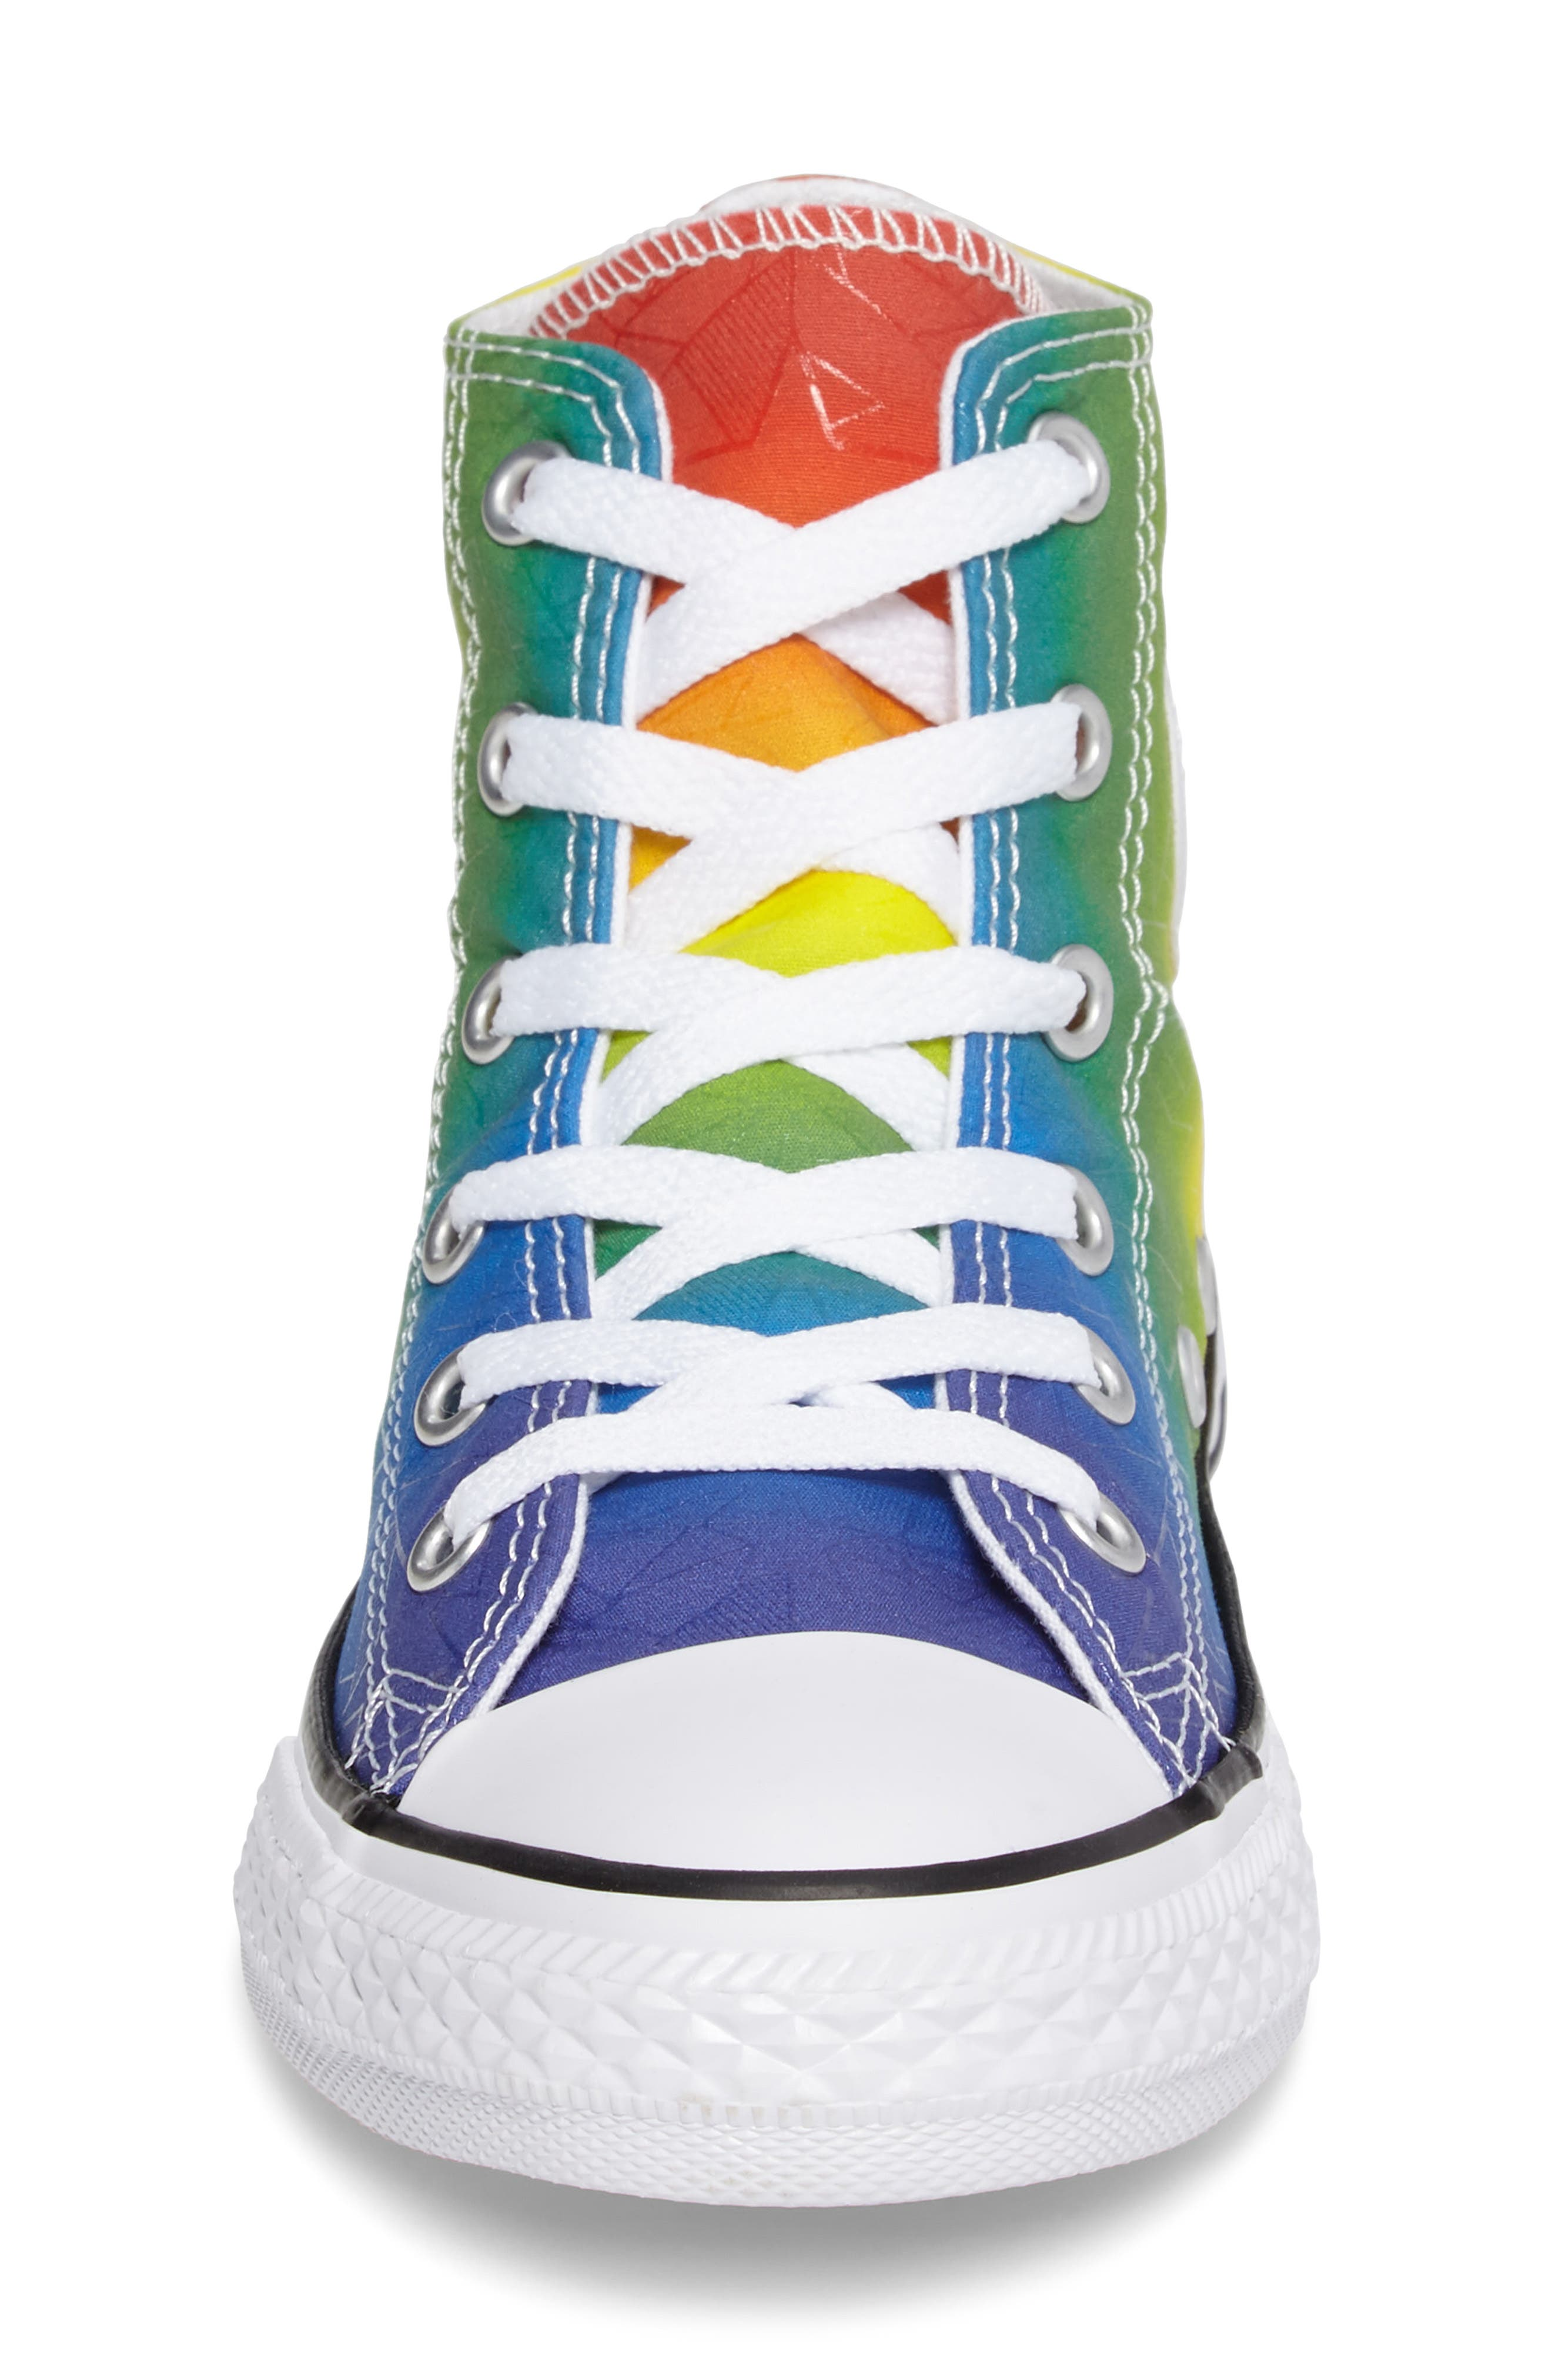 Chuck Taylor<sup>®</sup> All Star<sup>®</sup> Pride High Top Sneaker,                             Alternate thumbnail 4, color,                             400